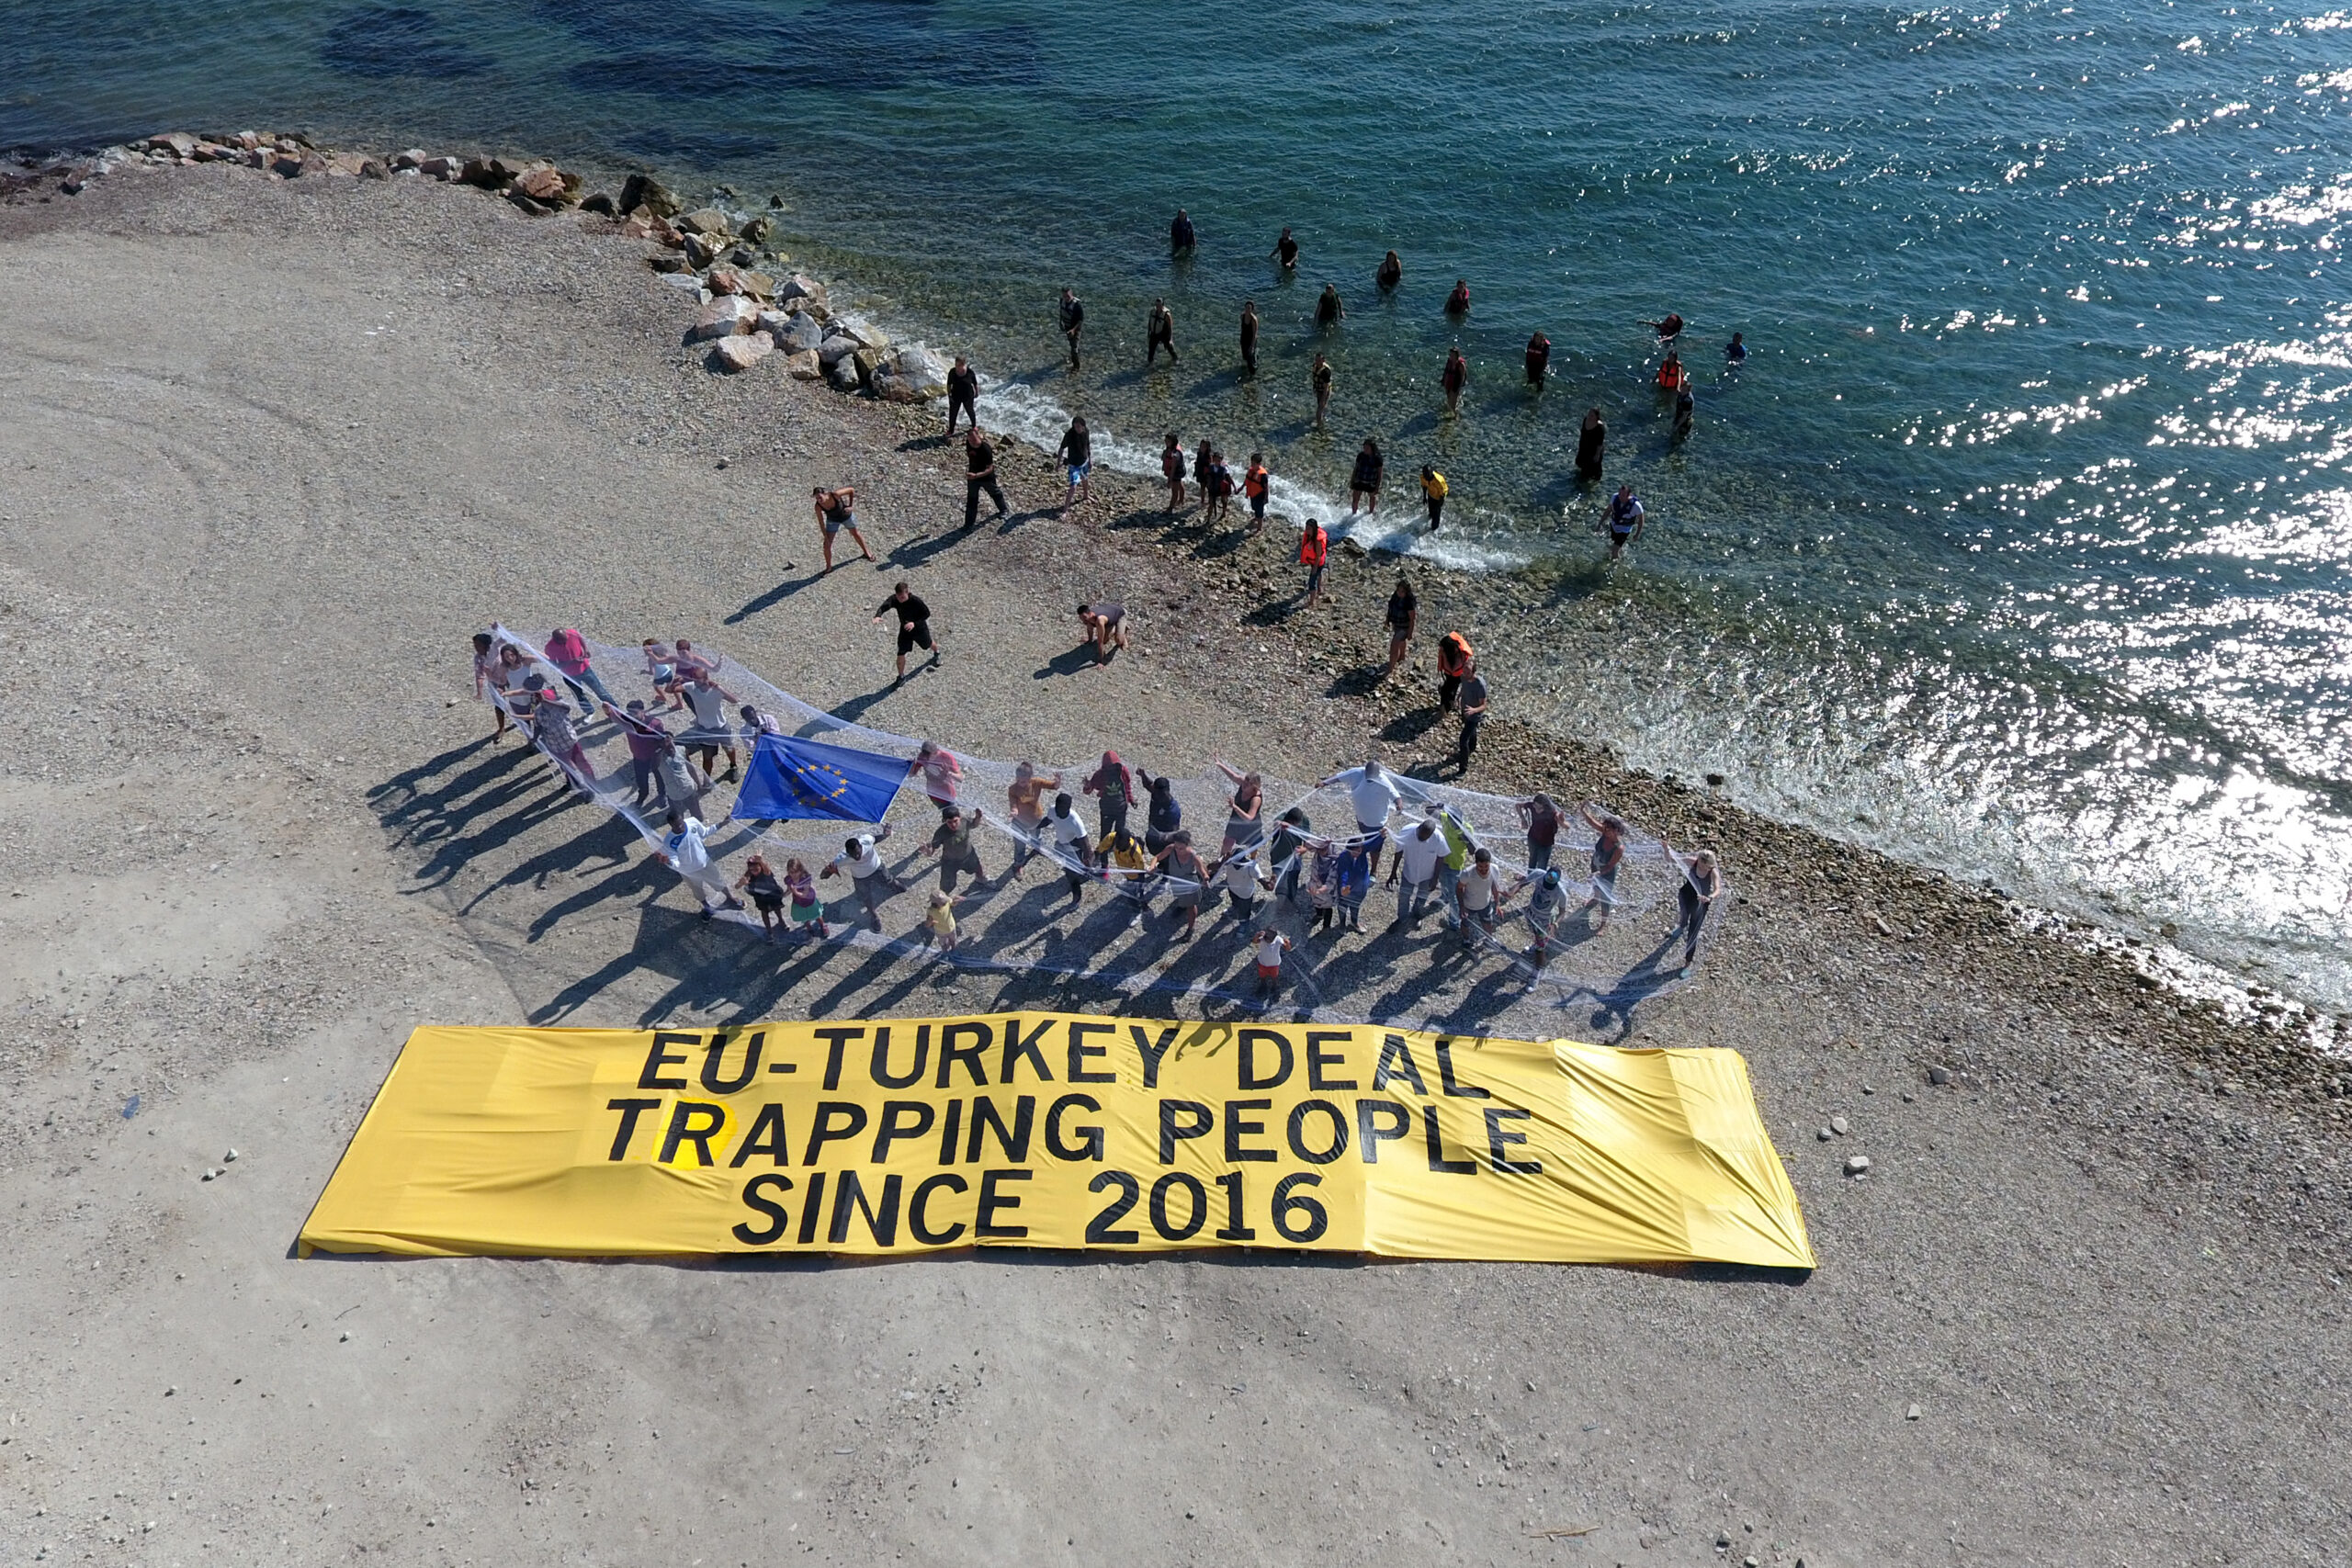 Five years after the EU-Turkey Statement, European Civil Society demands an end to containment and deterrence at the EU's External Borders